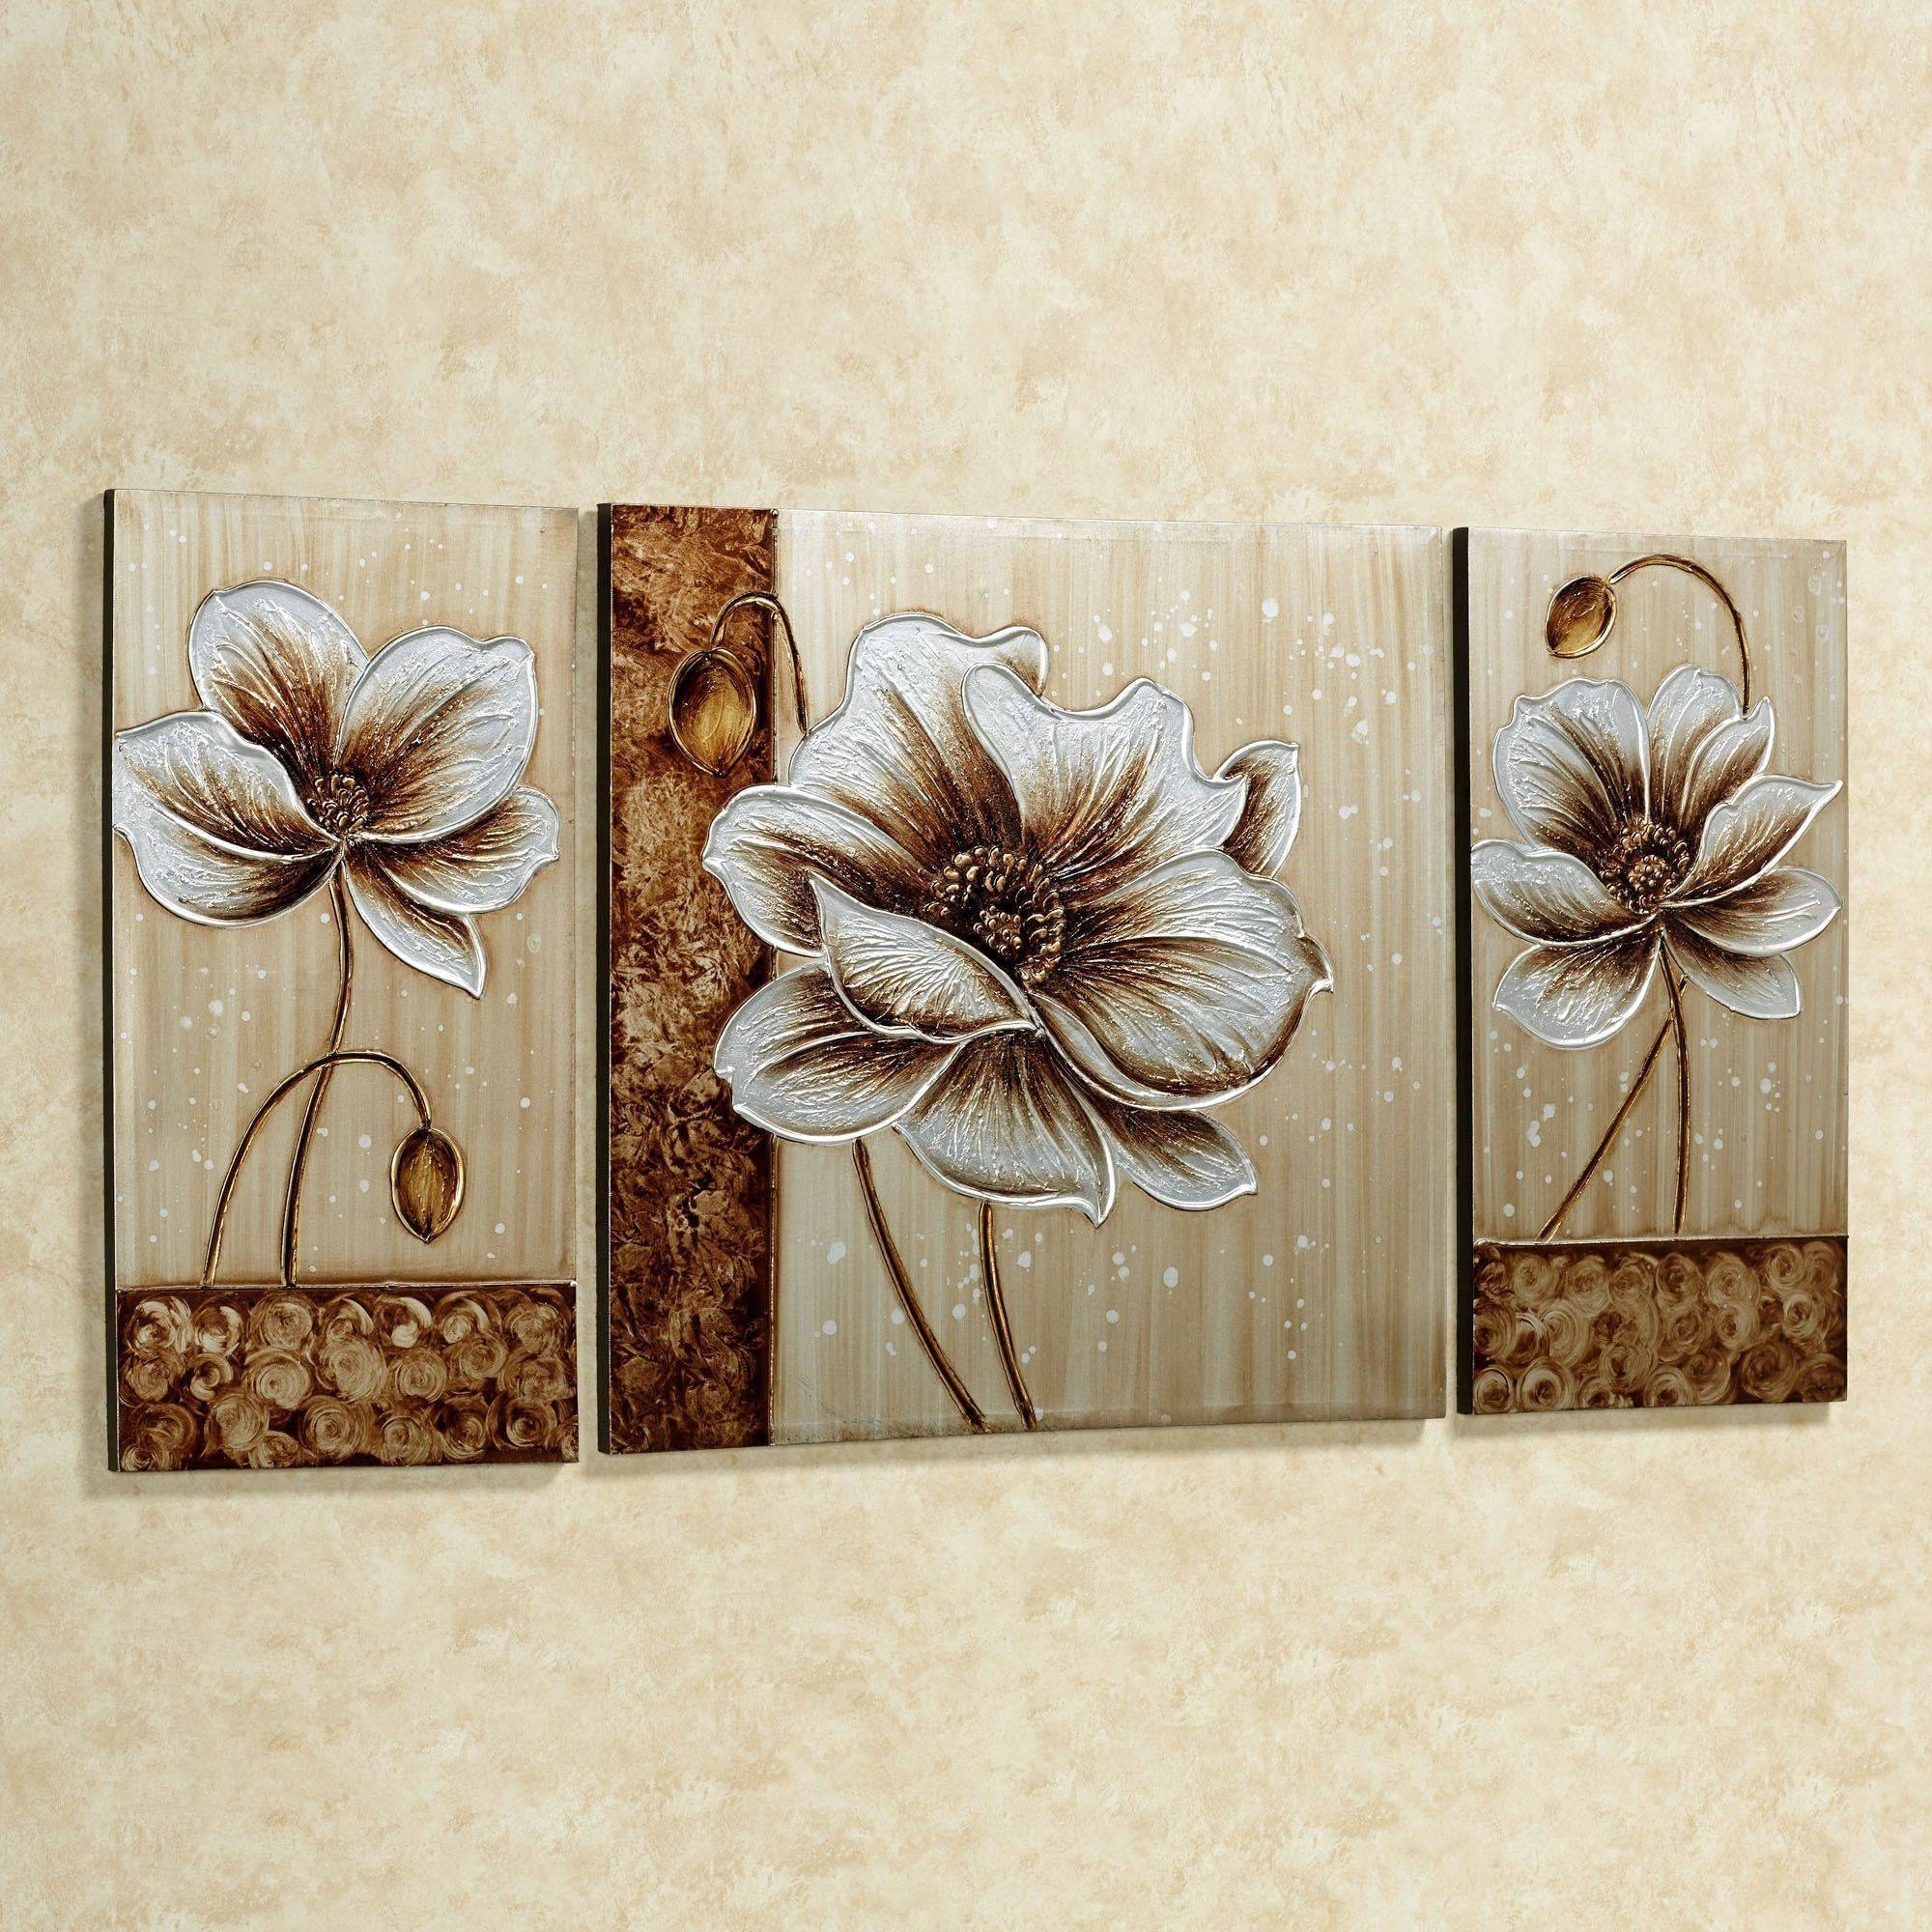 Subtle Elegance Floral Canvas Wall Art Set Inside 2018 4 Piece Wall Art Sets (View 8 of 20)